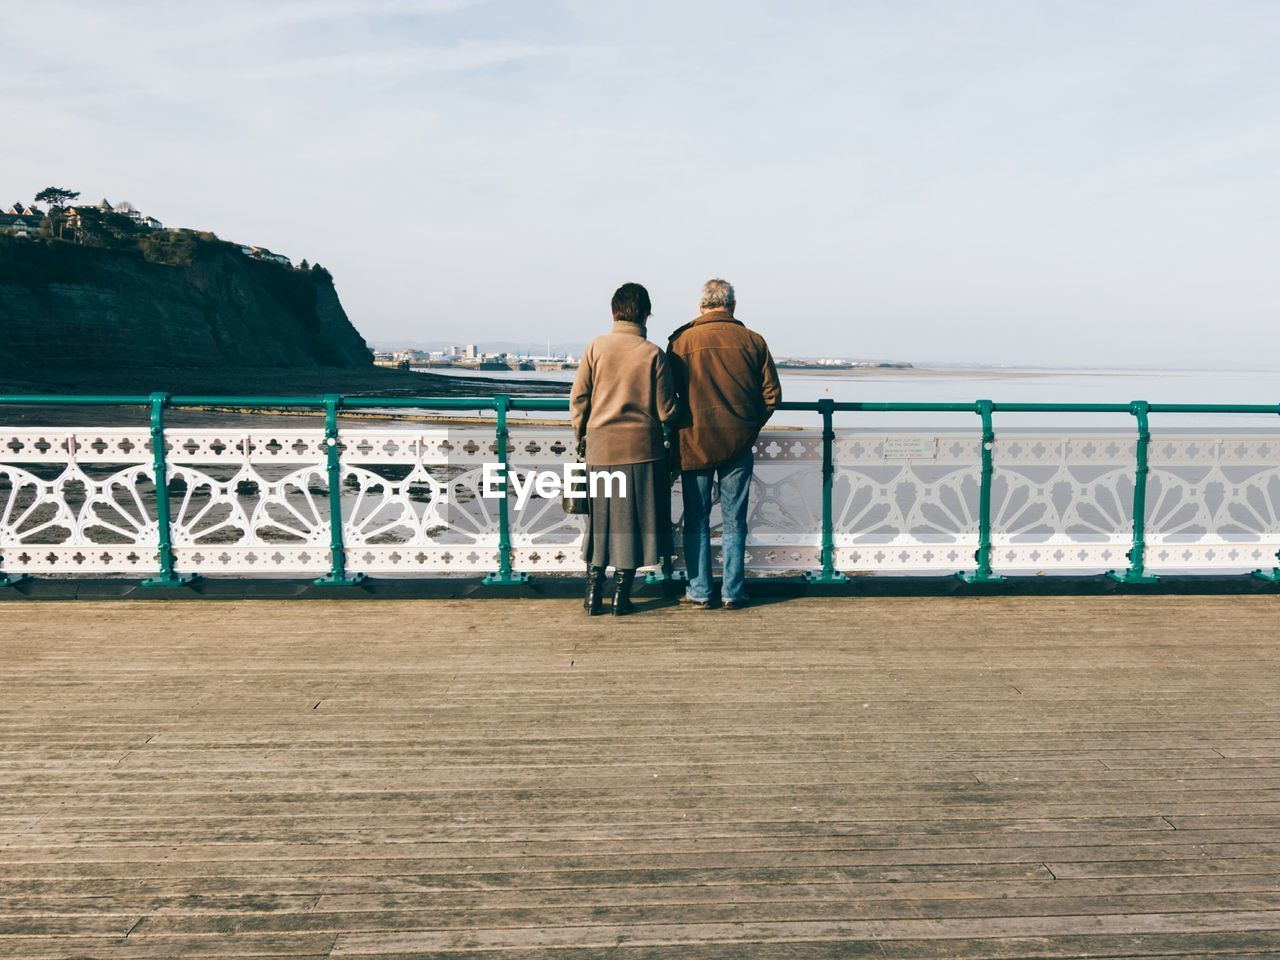 Rear view of people standing on pier by beach against sky